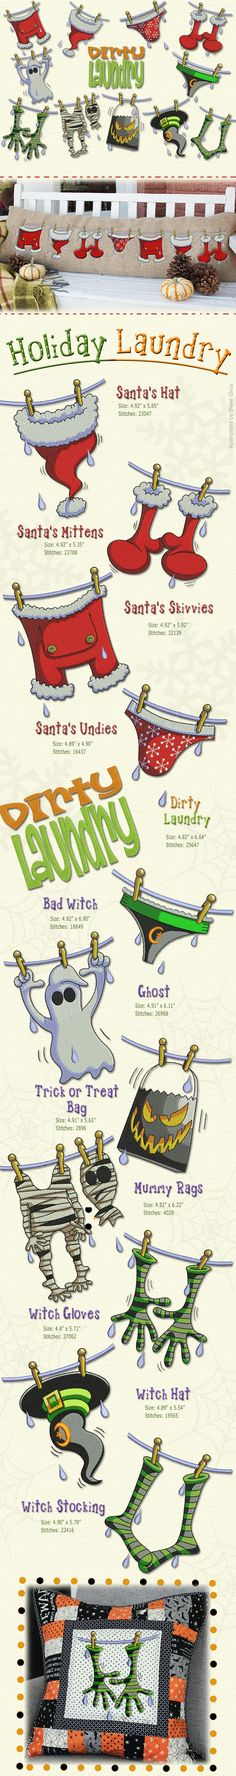 Great designs illustrated by Steve Gray, our Holiday laundry is one of our best seller collection, Santa clothe is drying on the line, so he can be ready for the holidays, and even the Witch from Halloween is also doing some laundry...... Enjoy